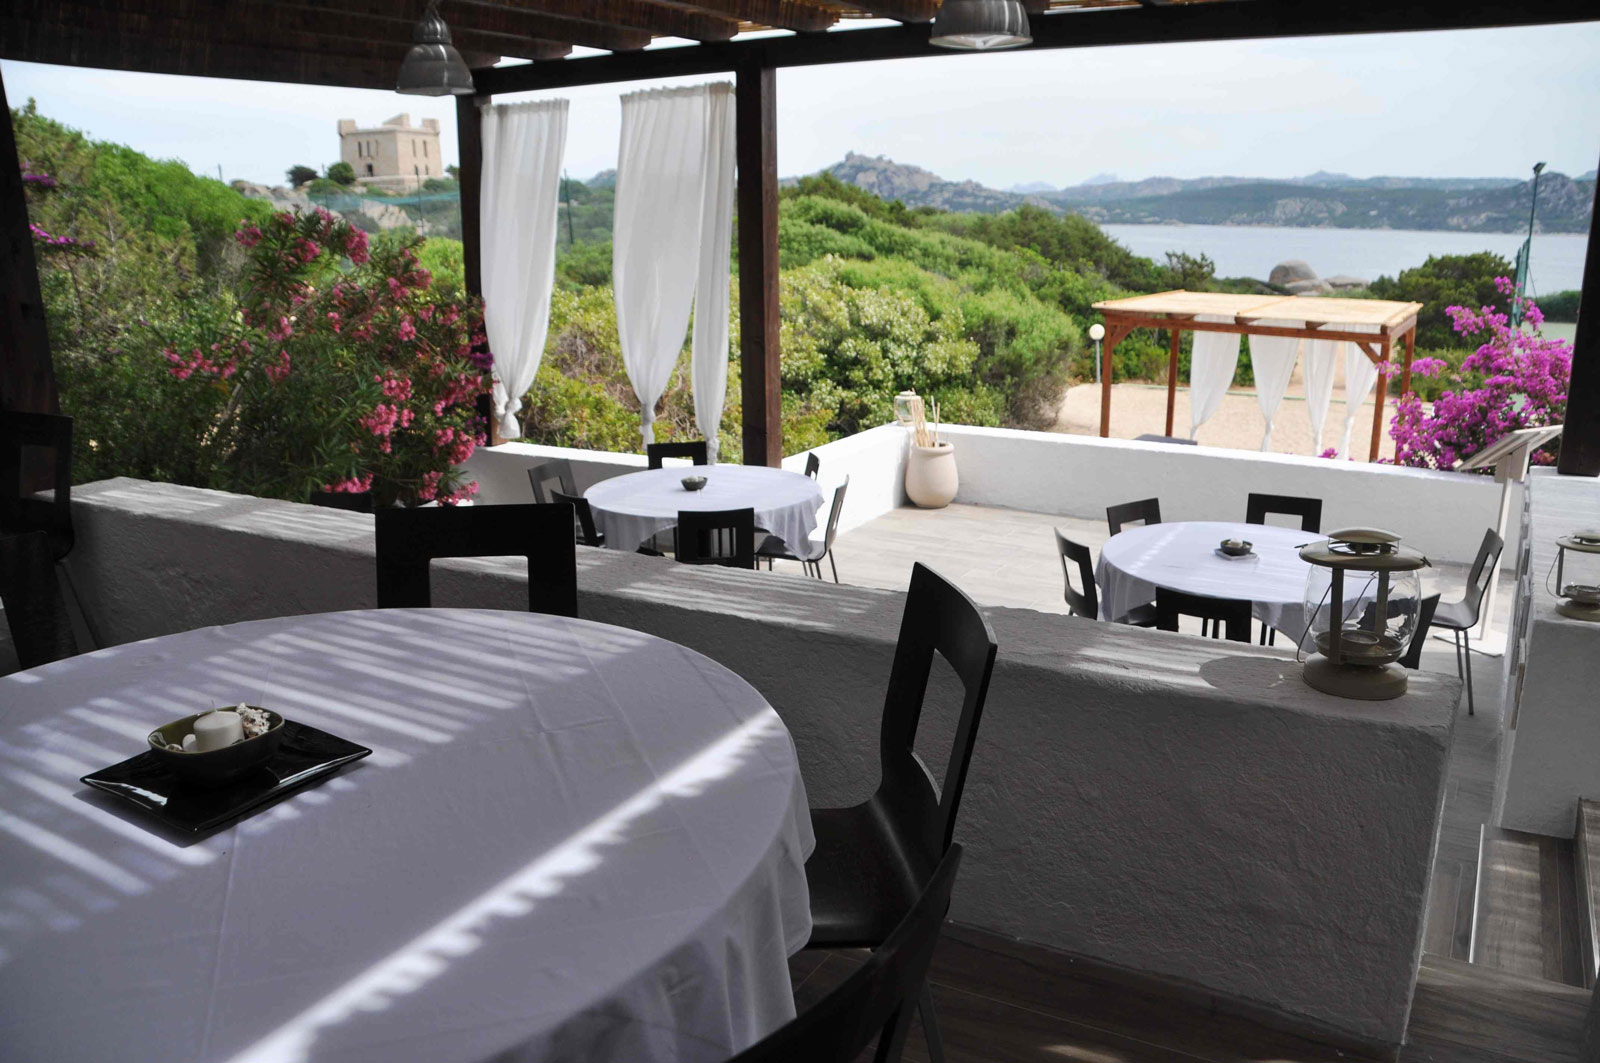 Santo Stefano Resort Ristorante Il Covo